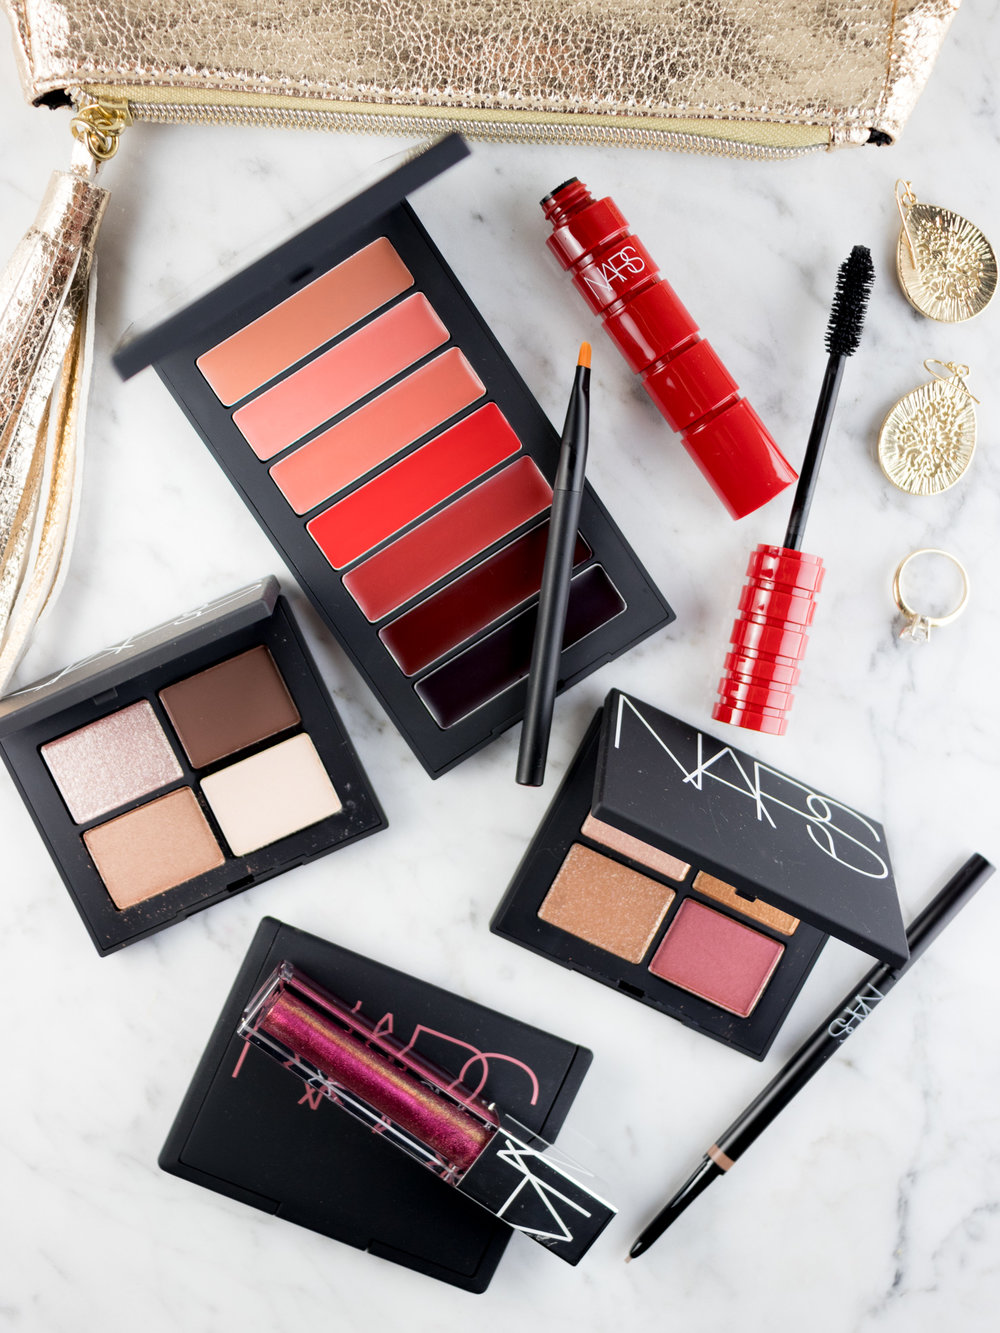 Fall 2018: NARS Fall Color Collection